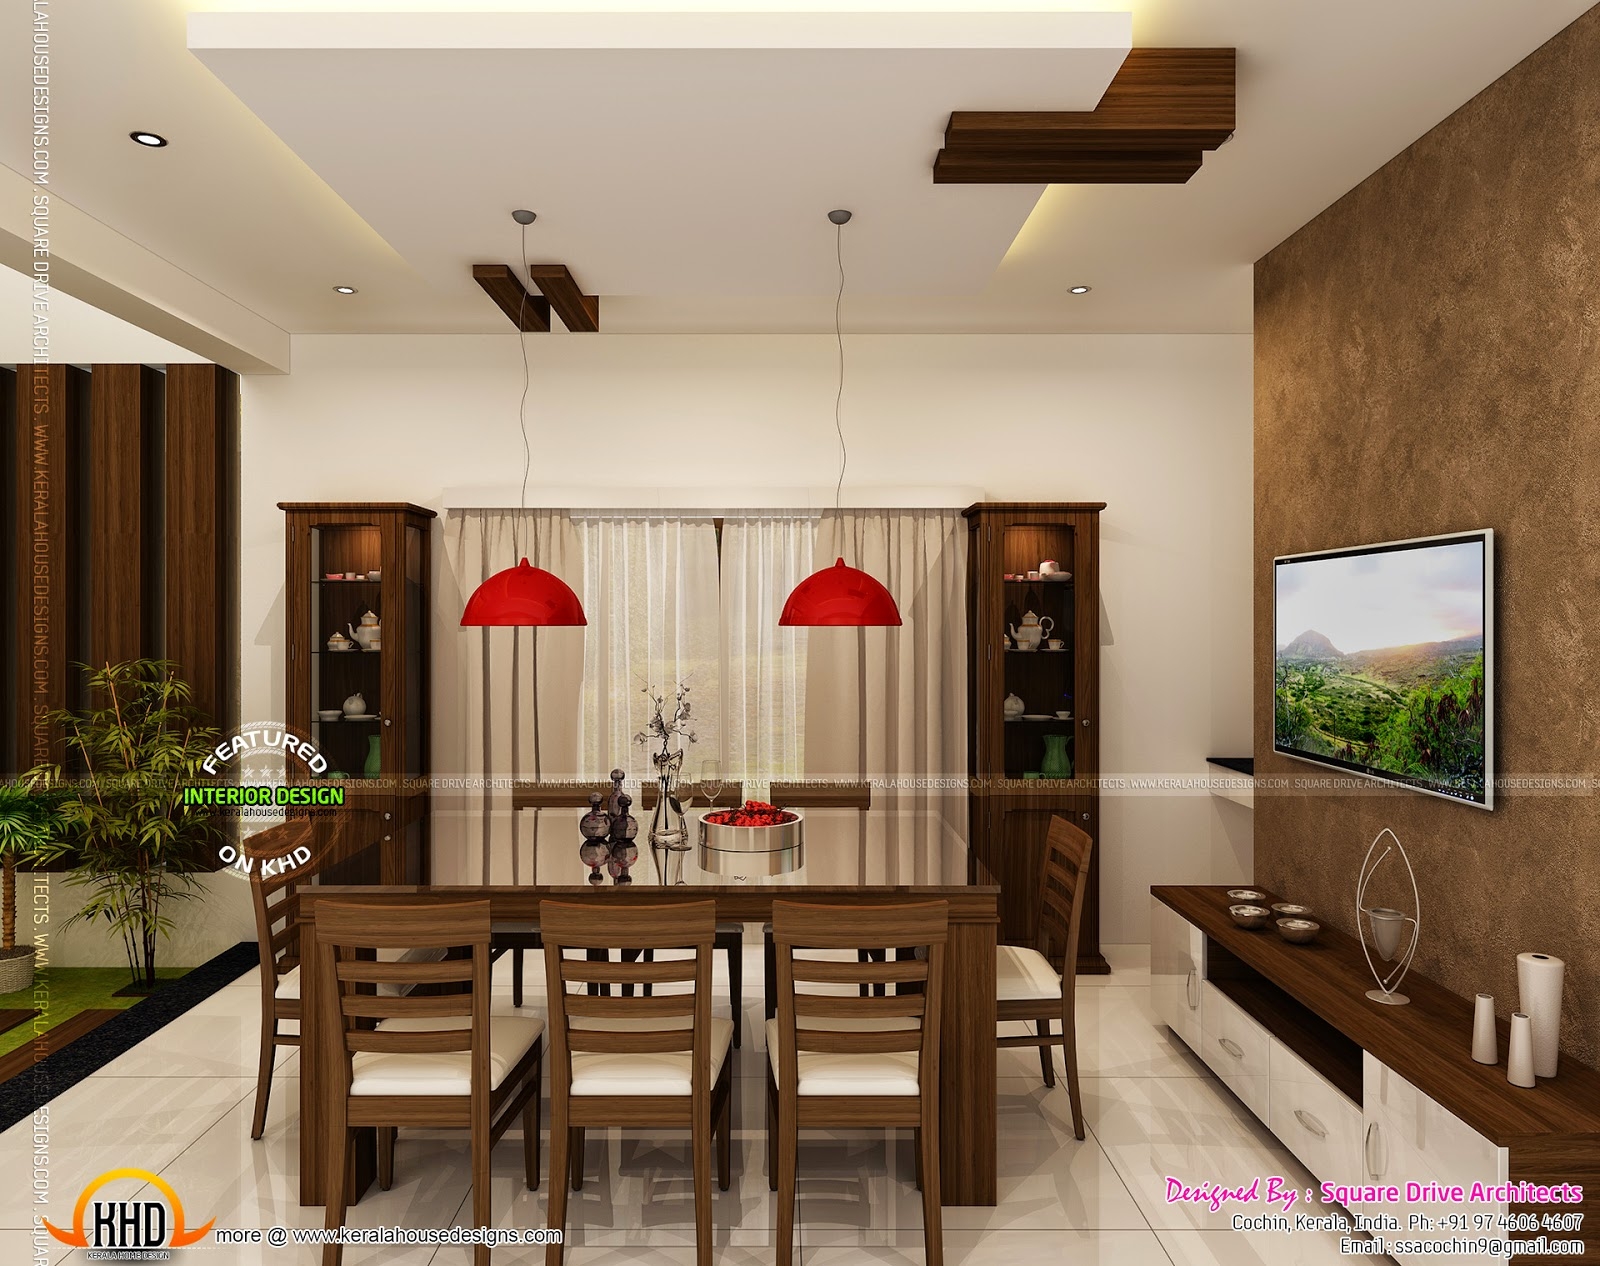 Home interiors designs kerala home design and floor plans - Interior design for home ...